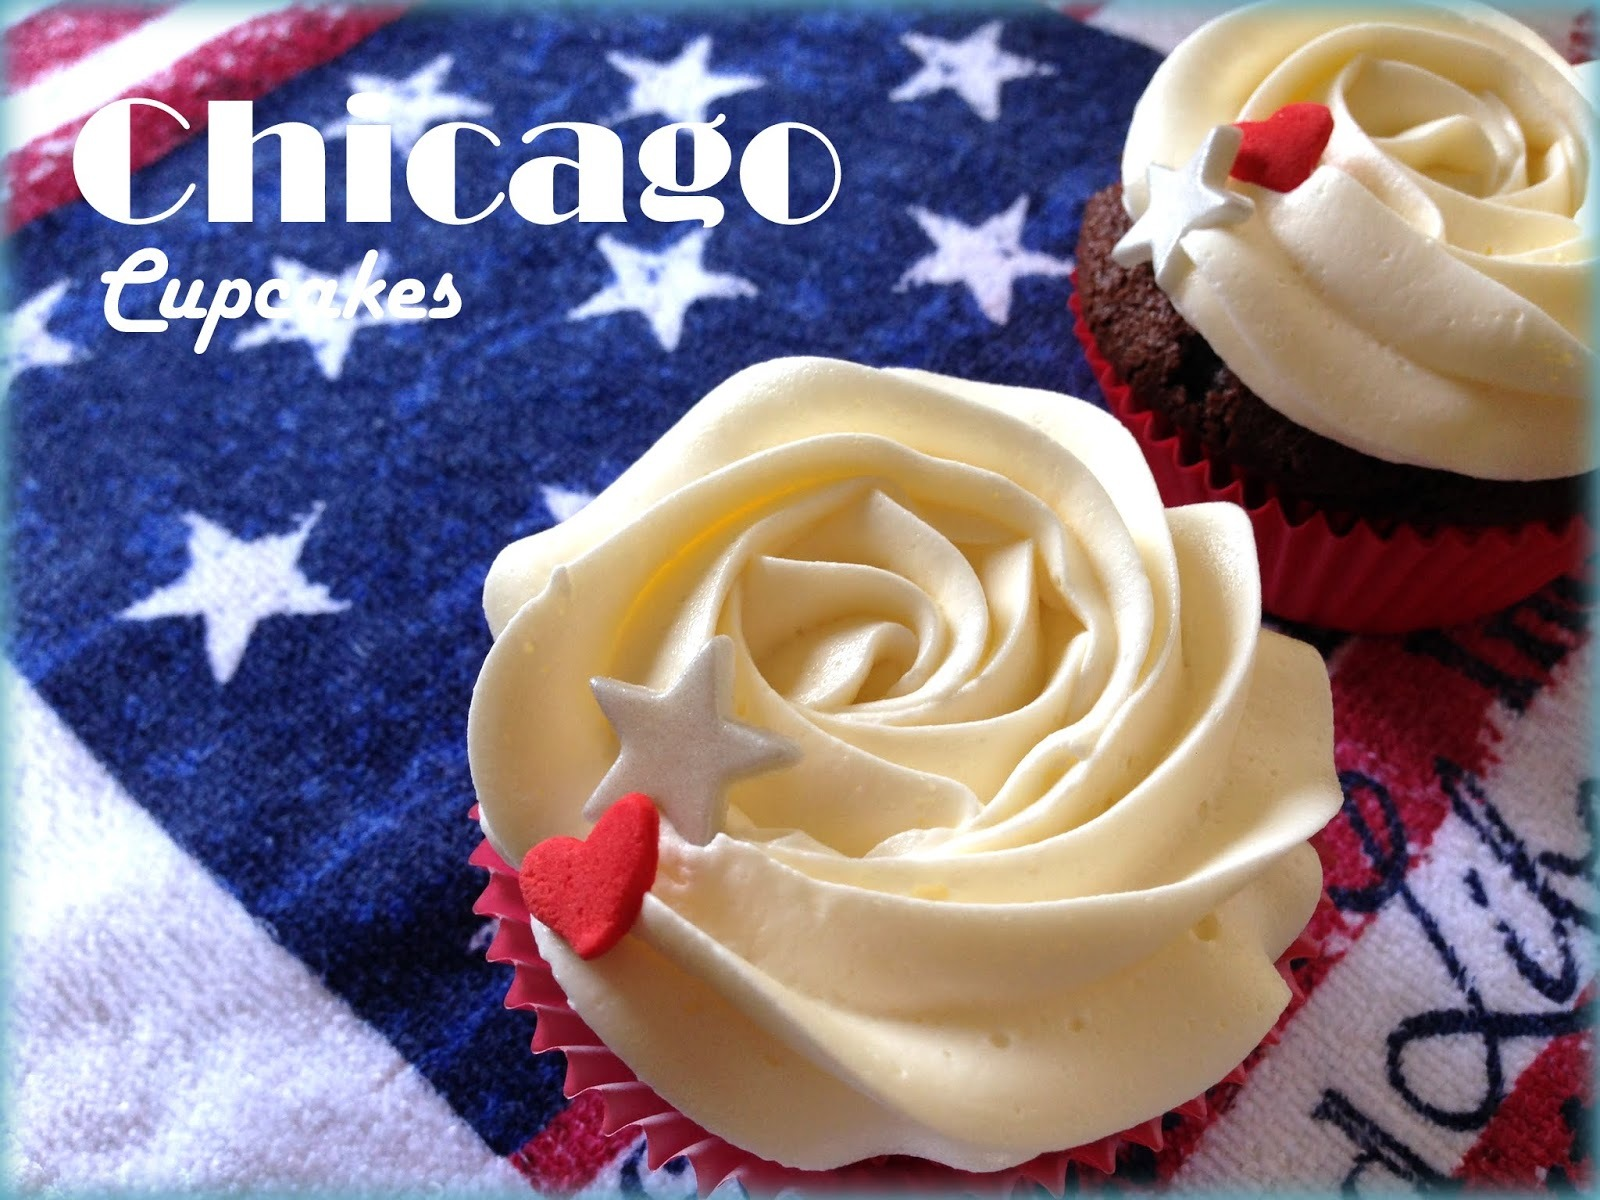 Chicago Cupcakes de Chocolate con Buttercream de Sirope de Arce. Cooking in America.